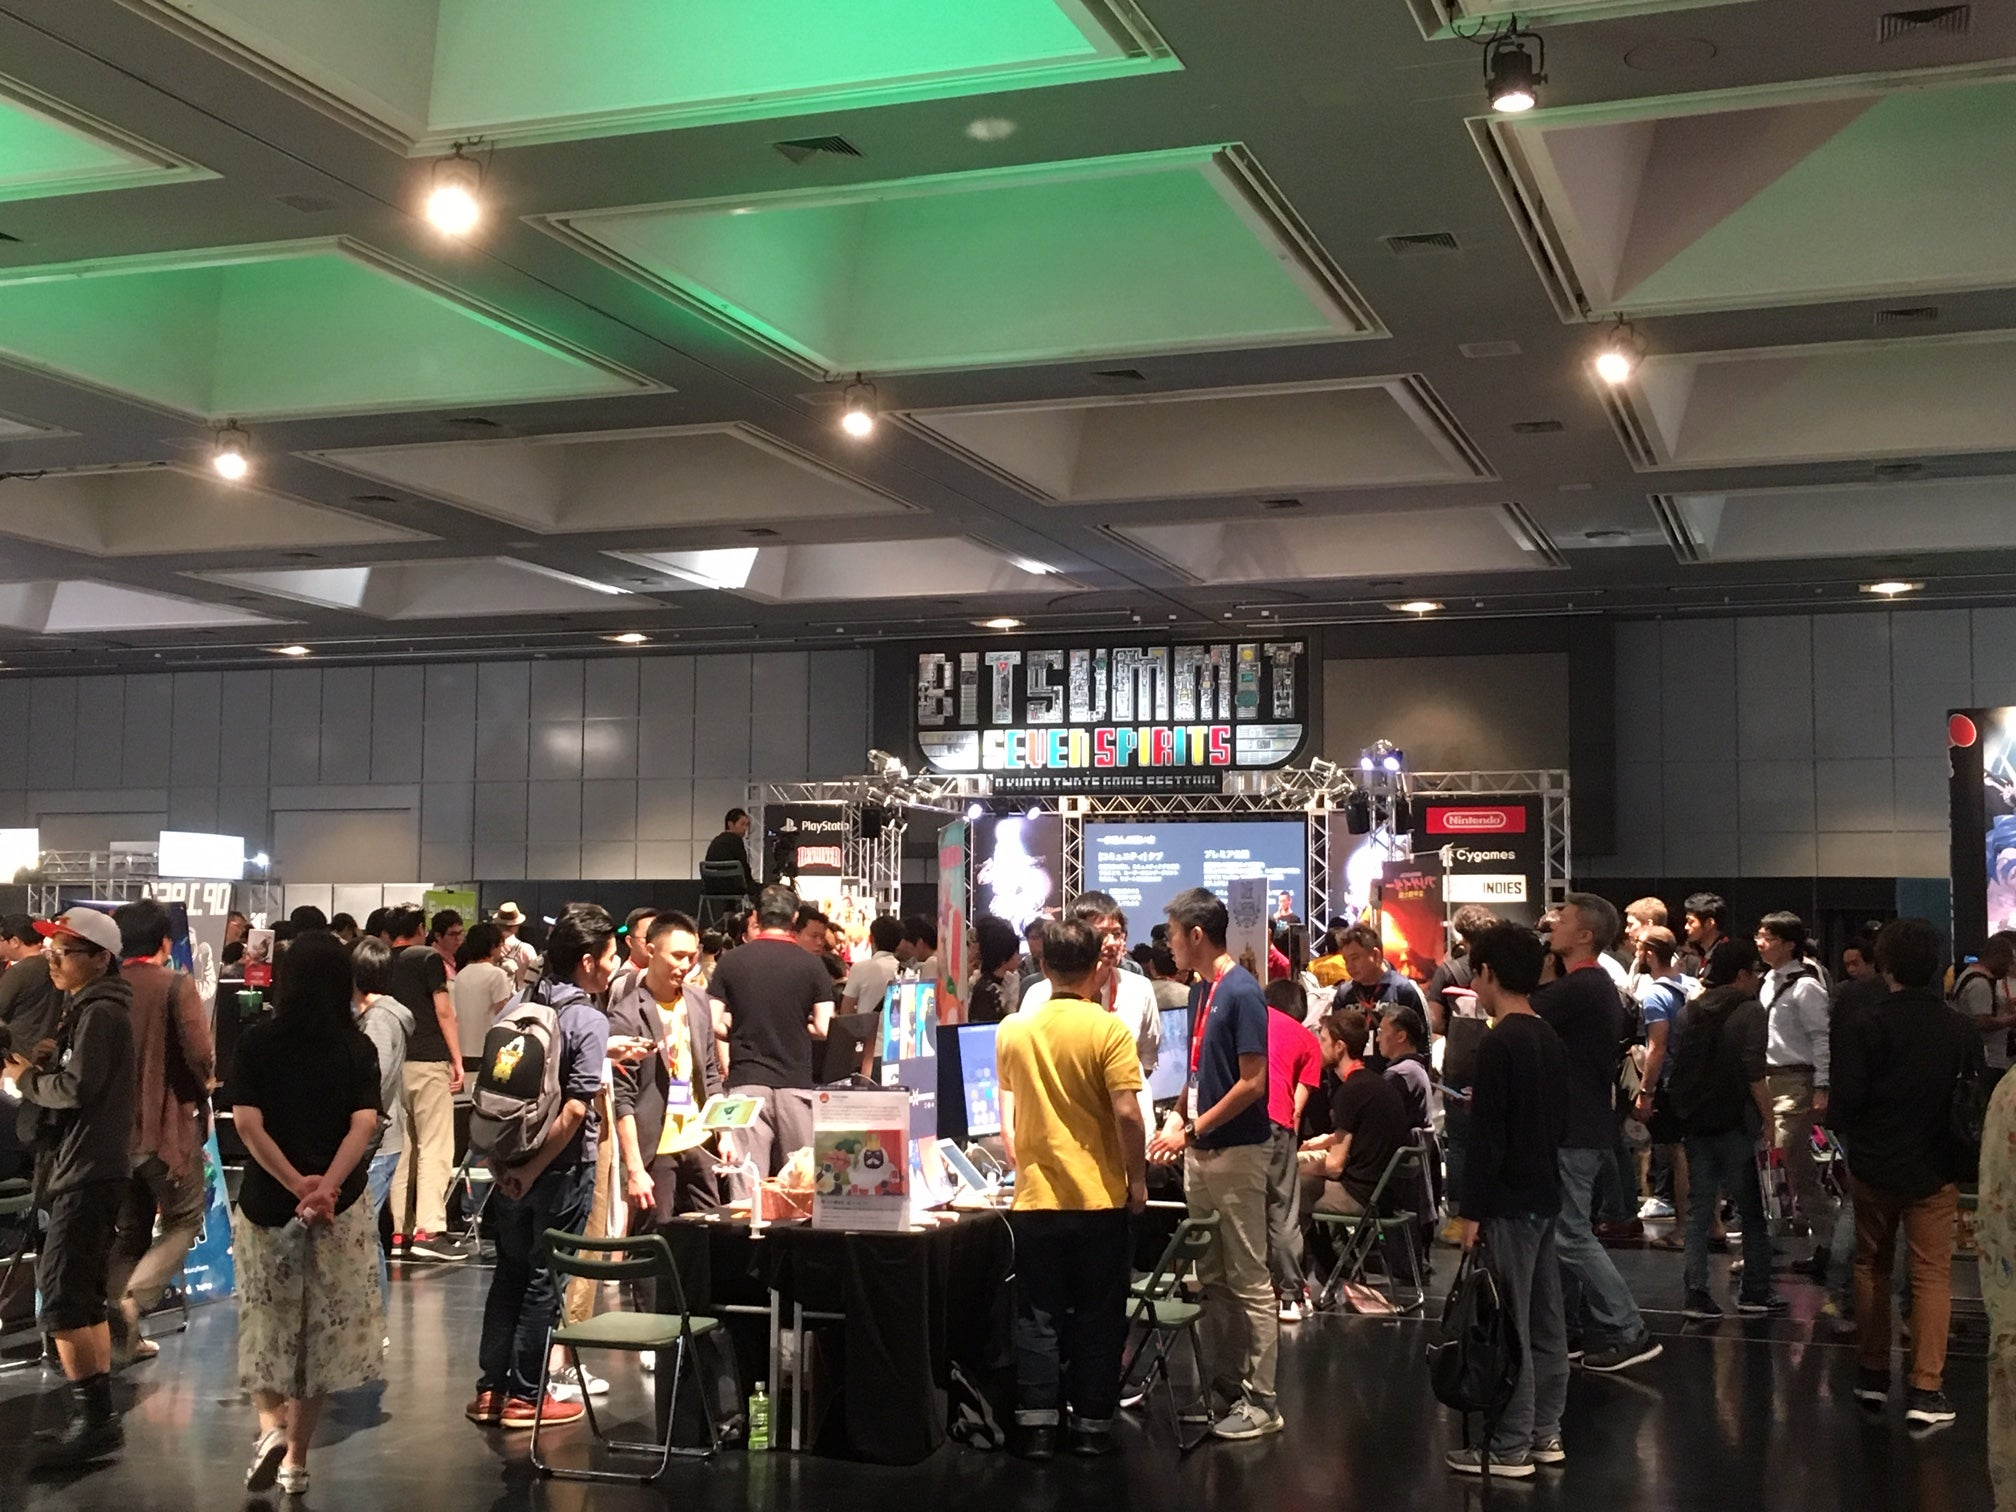 The Sights And Sounds Of BitSummit